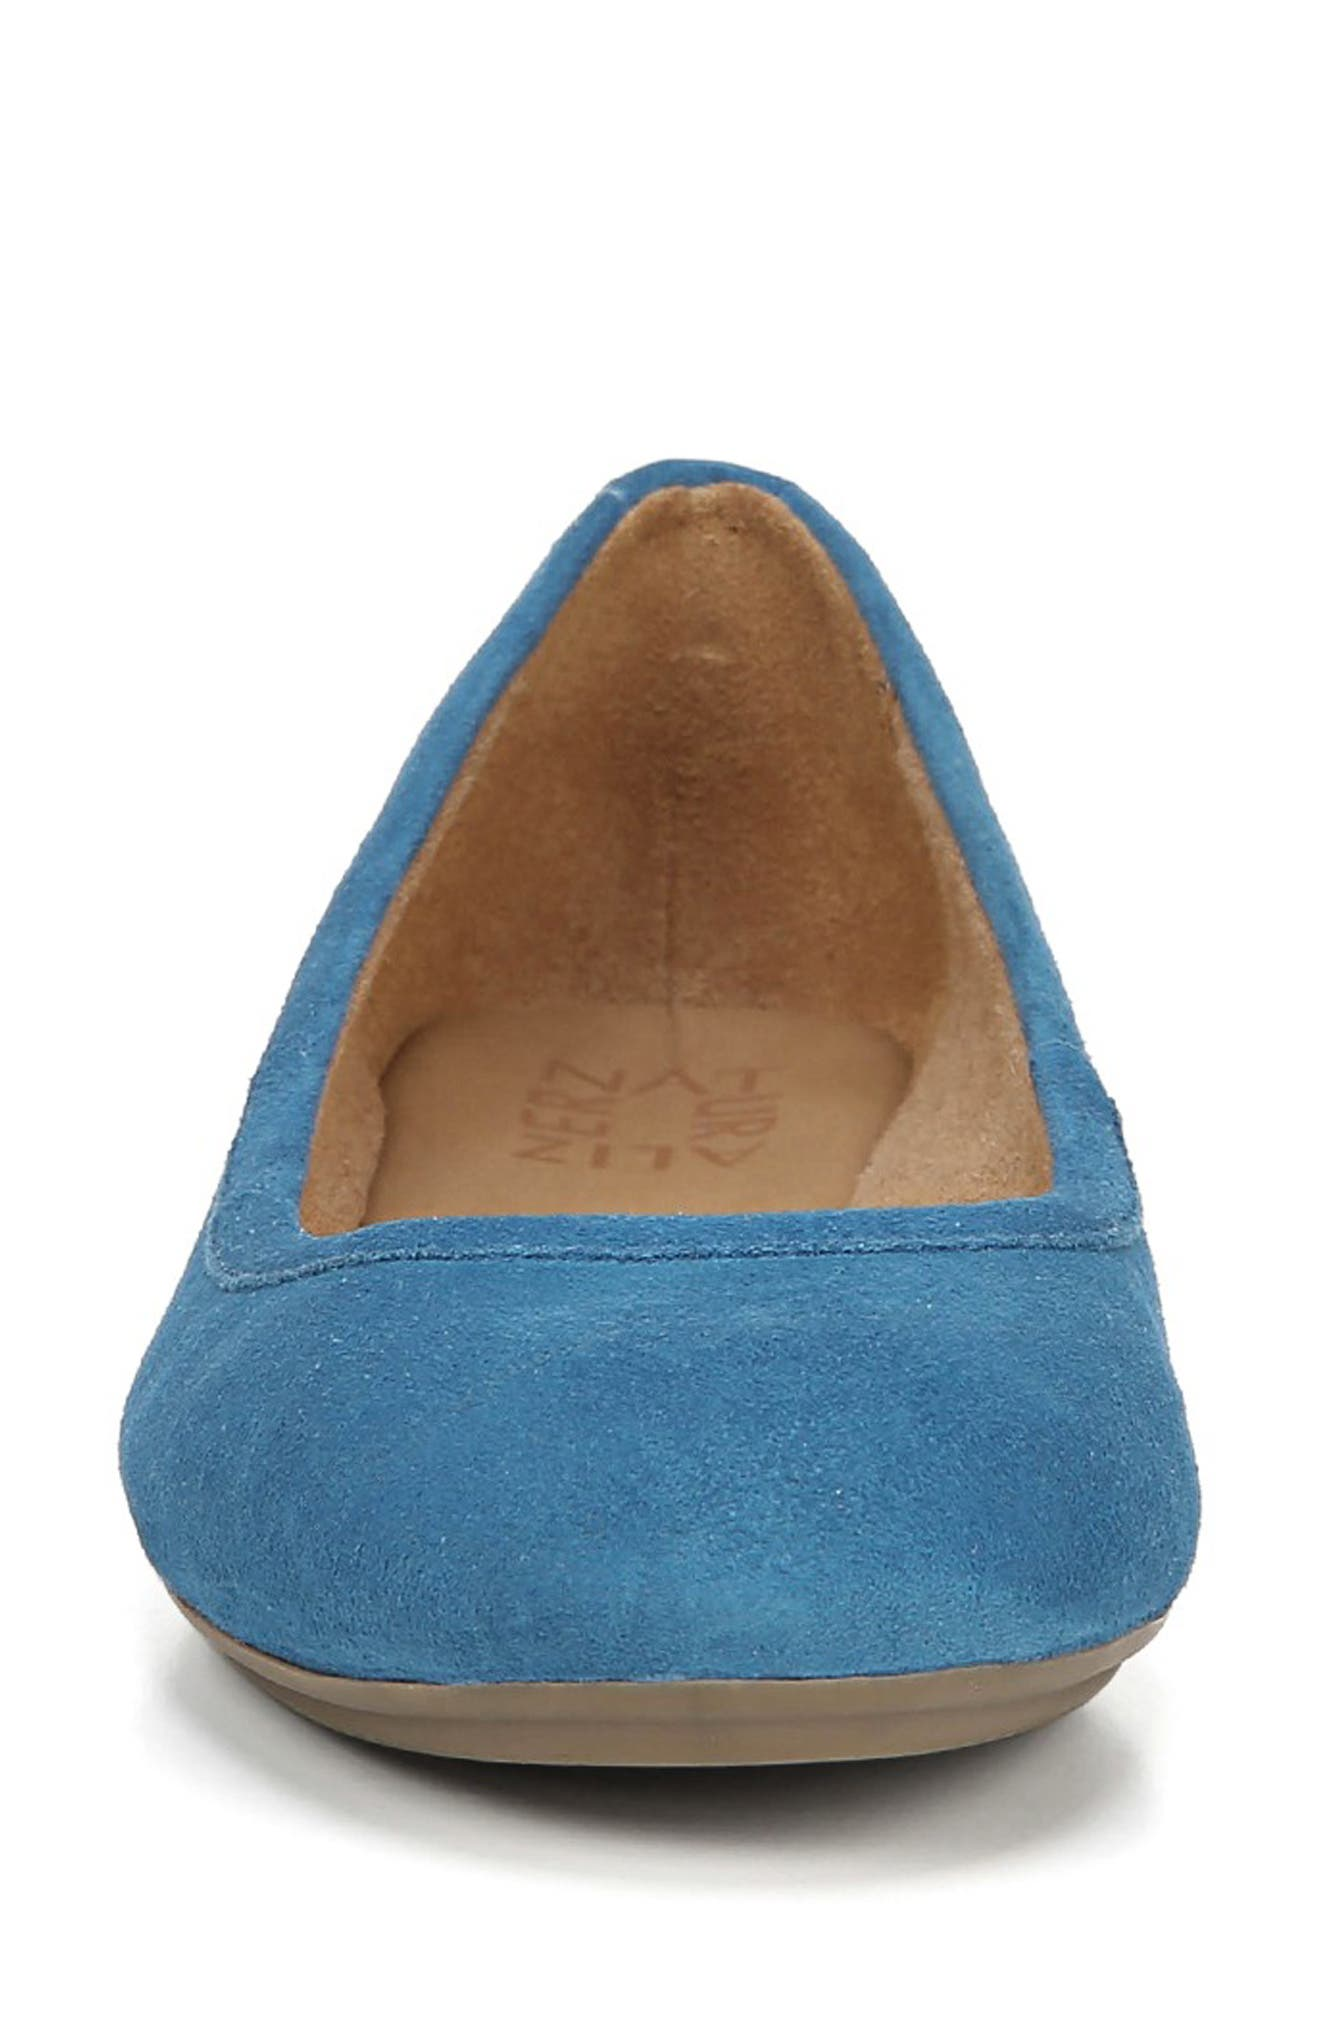 Brittany Flat,                             Alternate thumbnail 4, color,                             ADMIRAL BLUE LEATHER